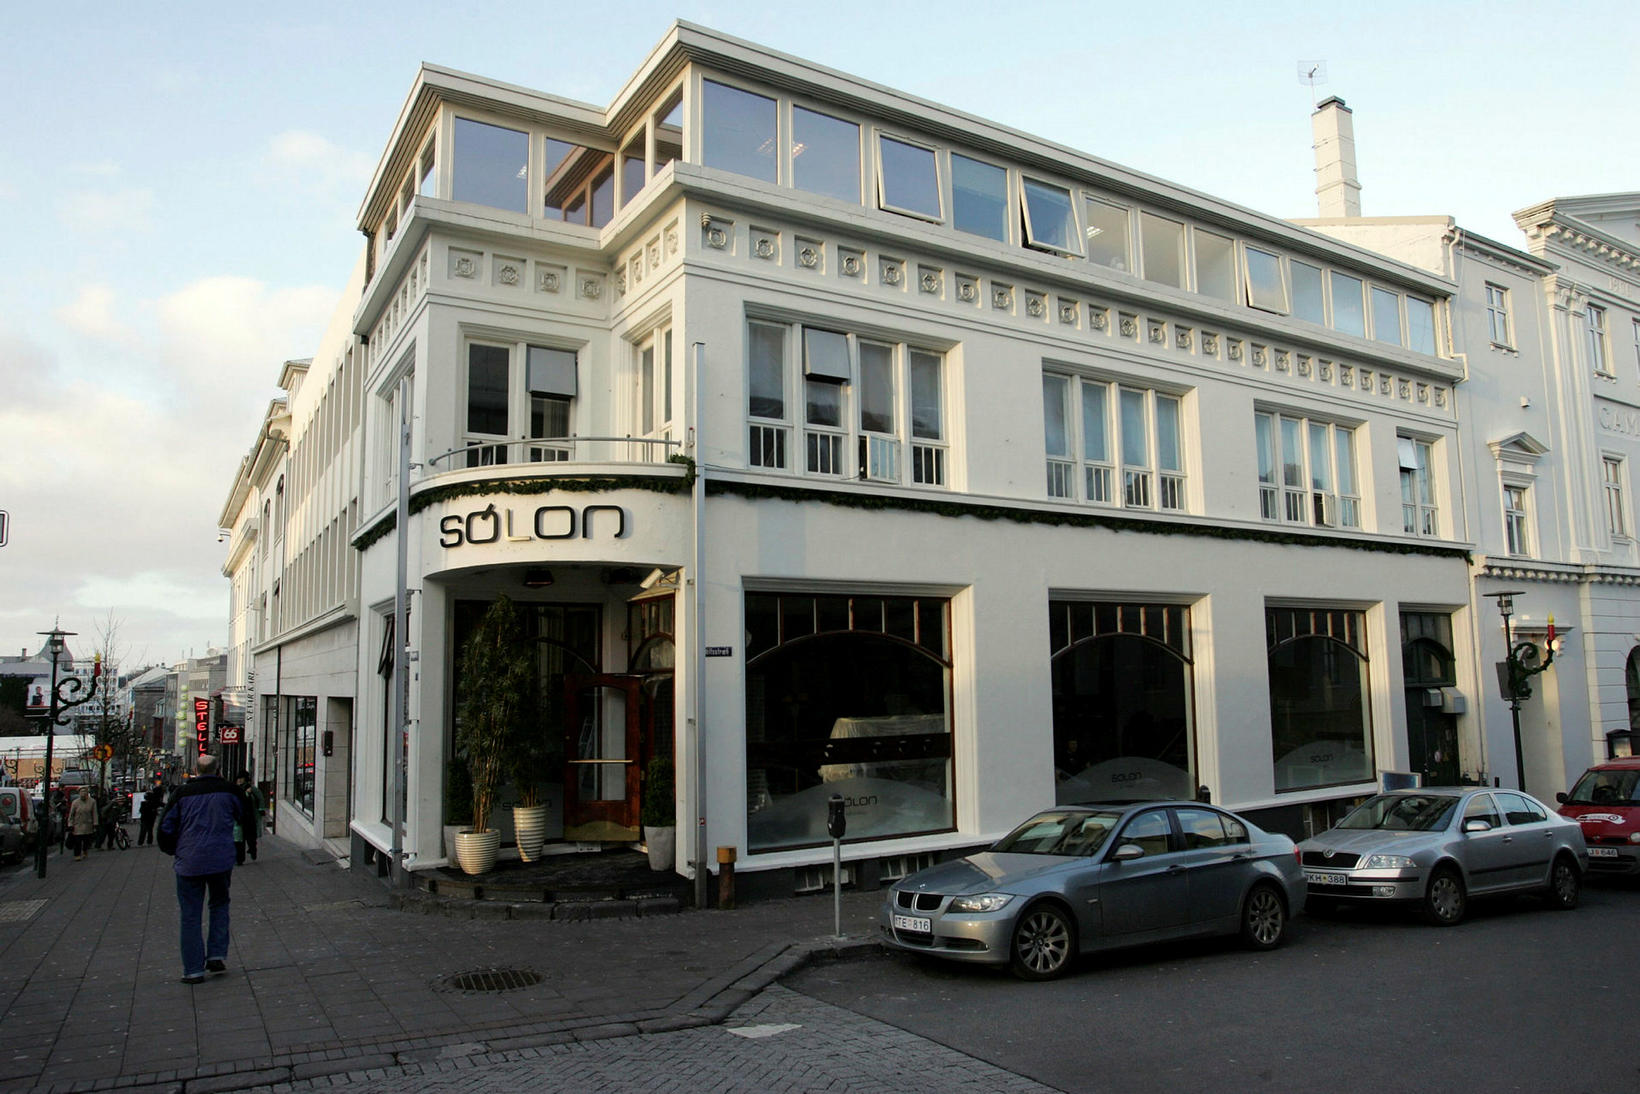 Sólon restaurant.